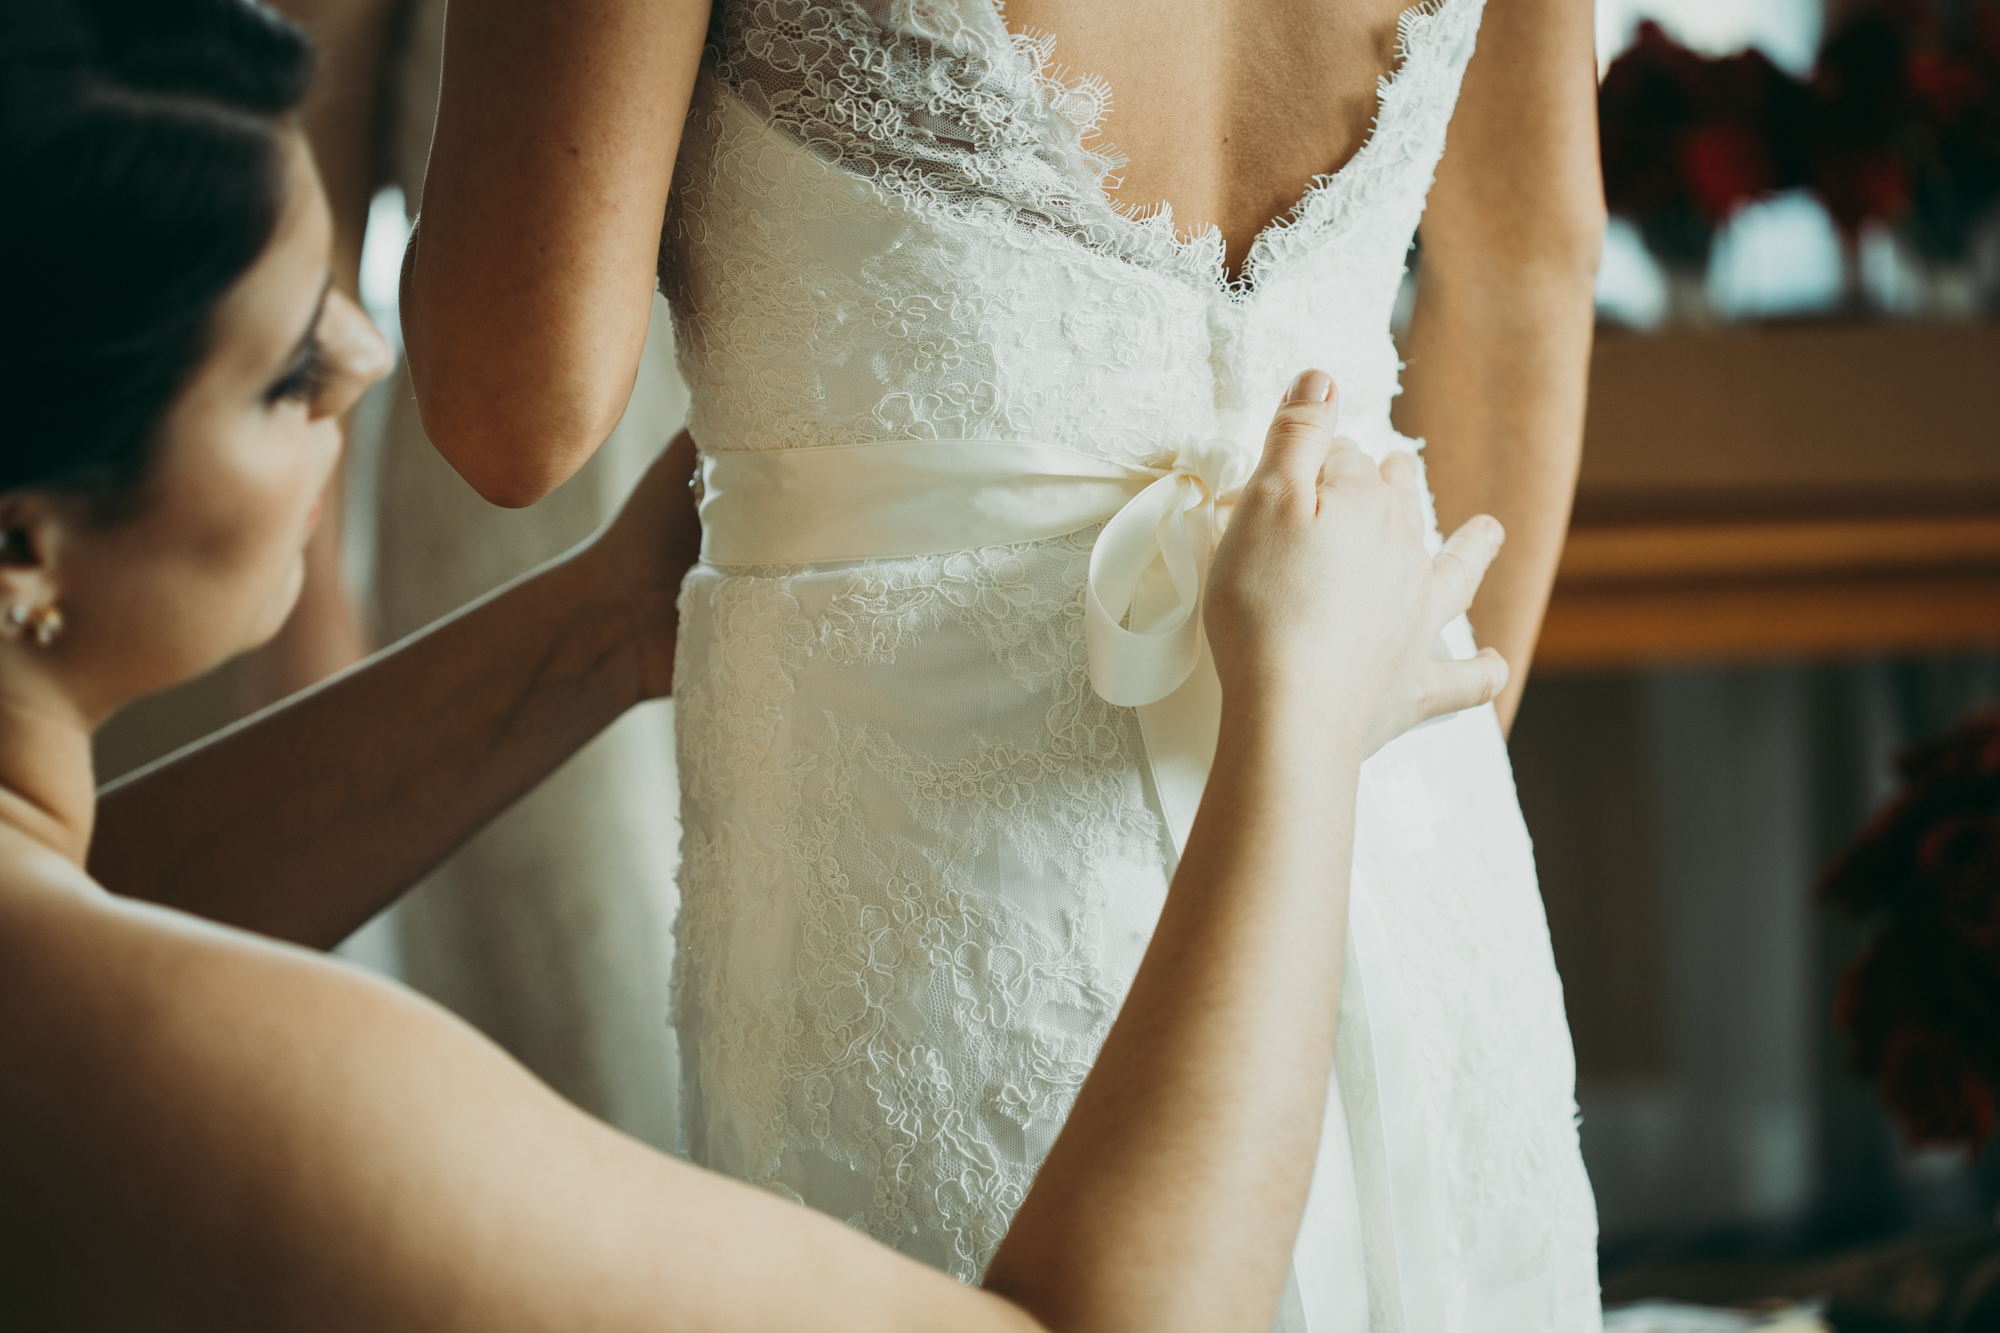 Bridesmaid helping bride put on her lace wedding gown.